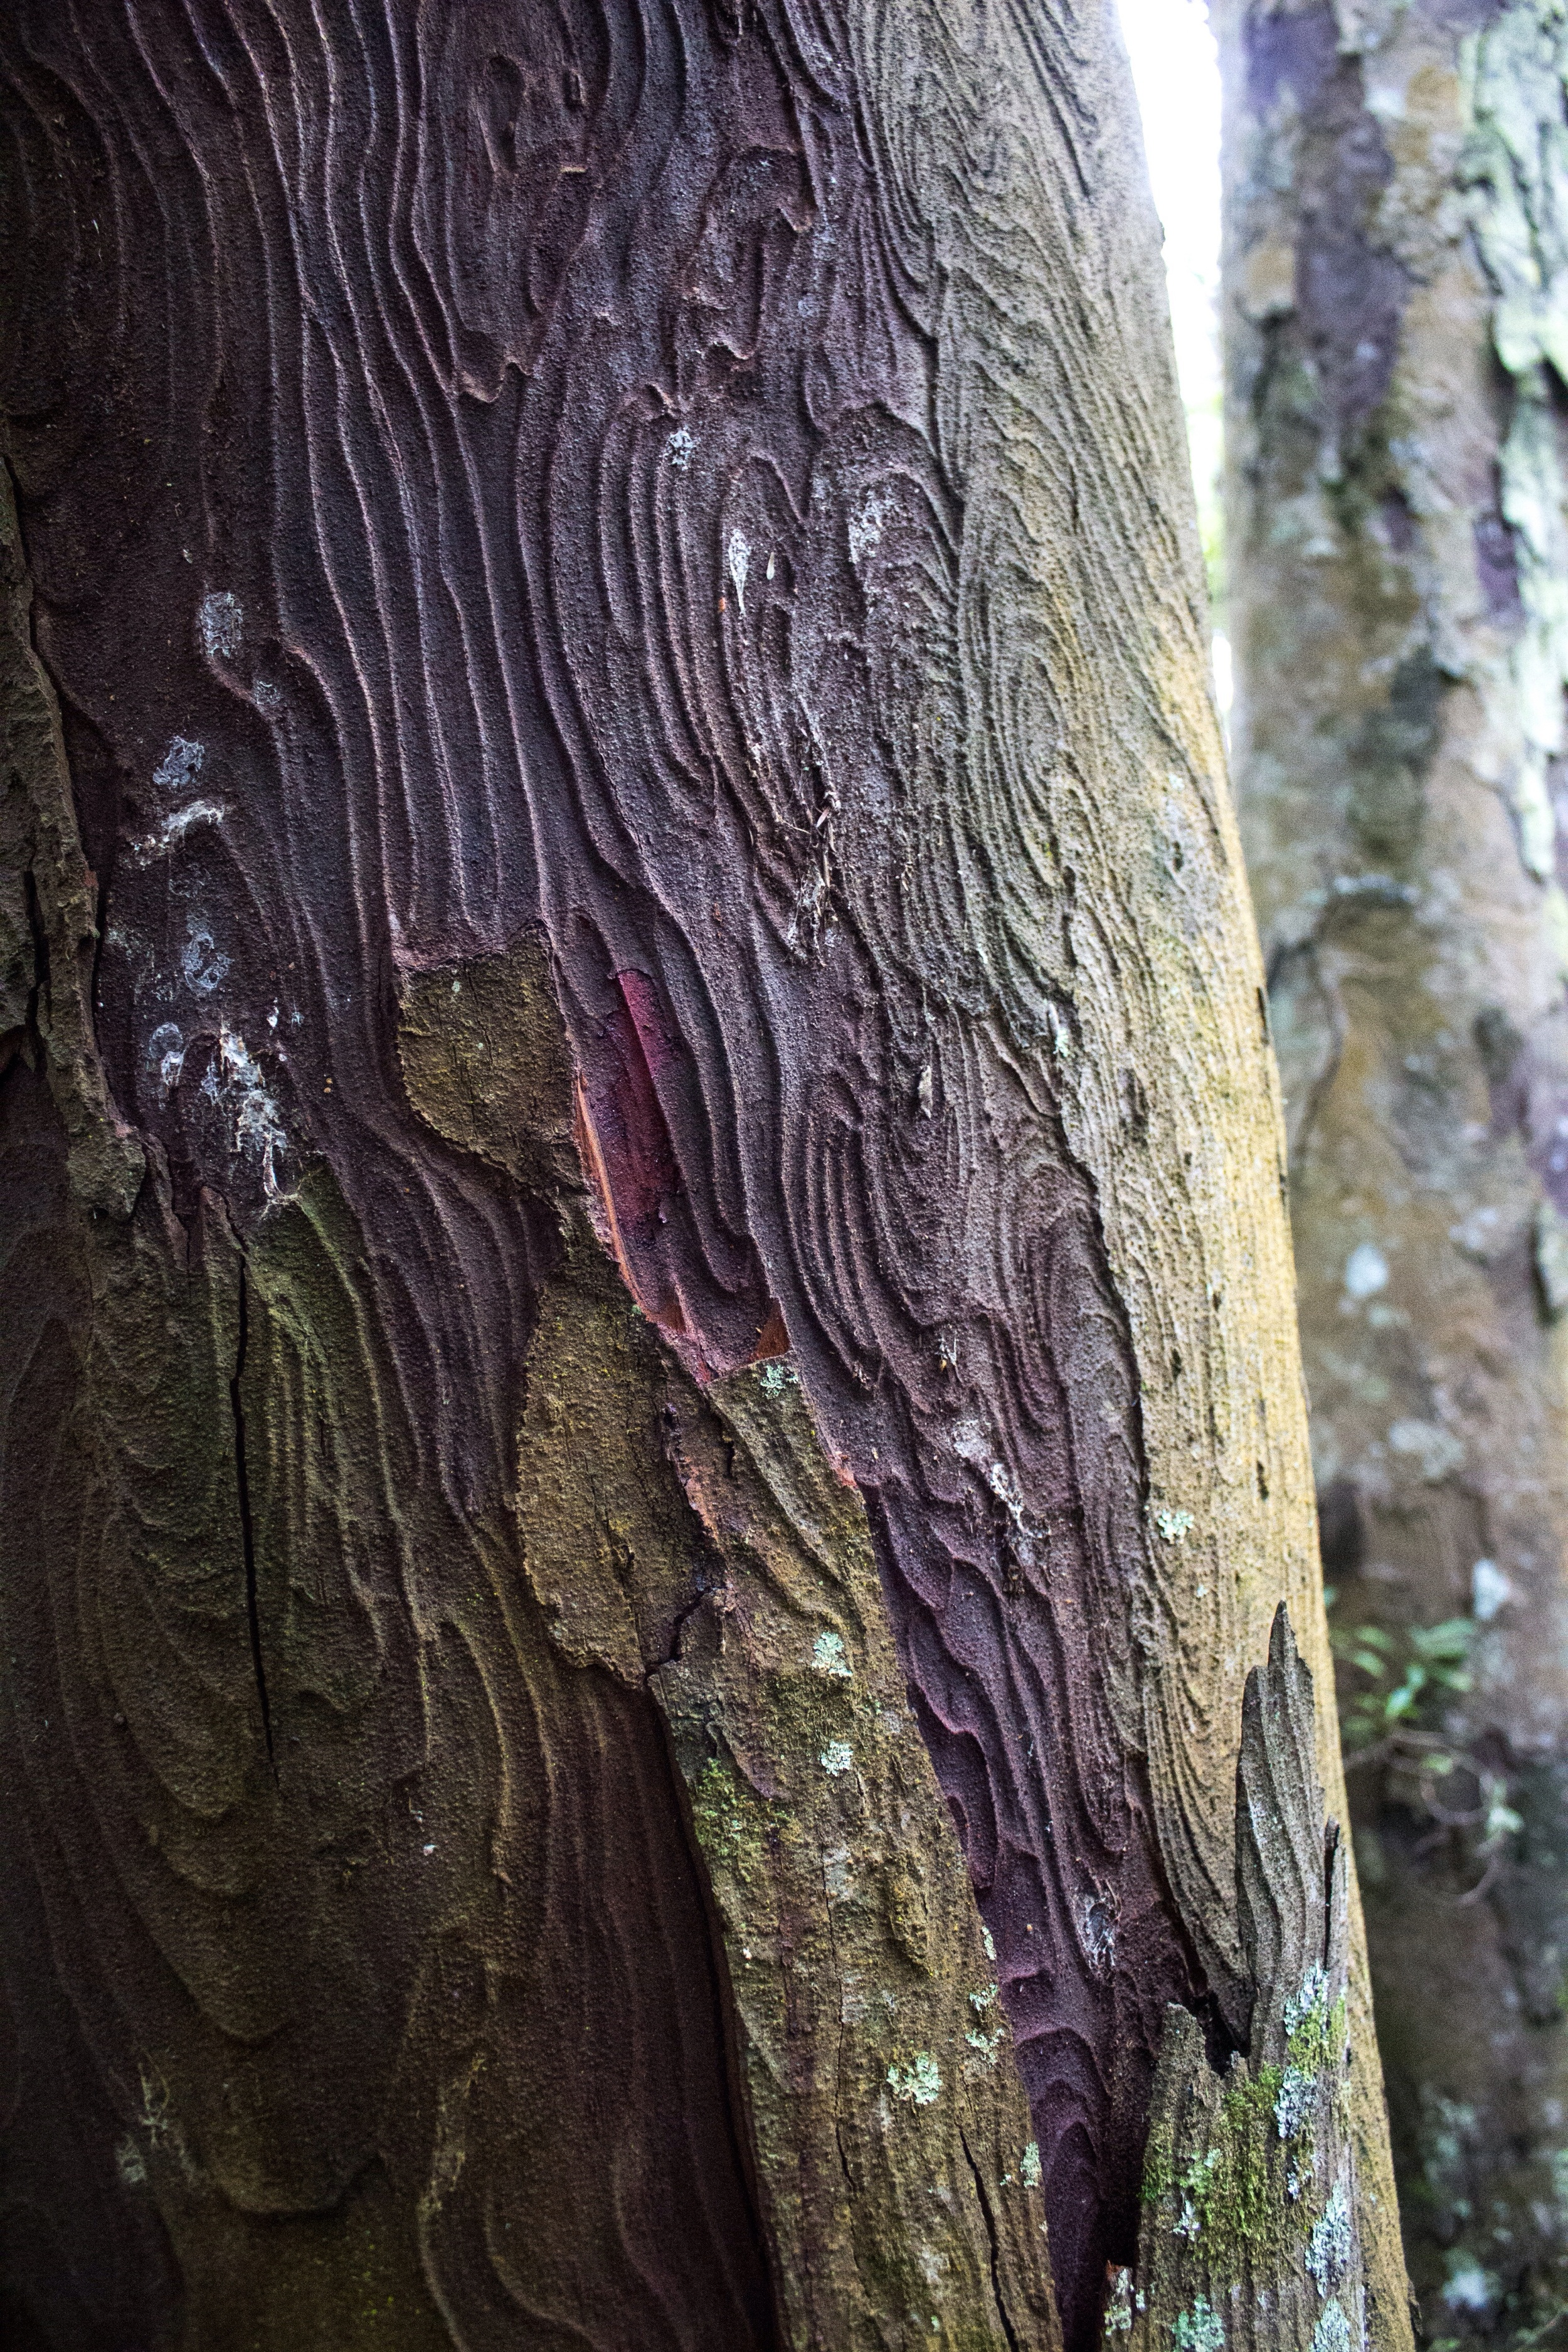 Rimu tree topography. Orokonui Ecosanctuary, New Zealand.